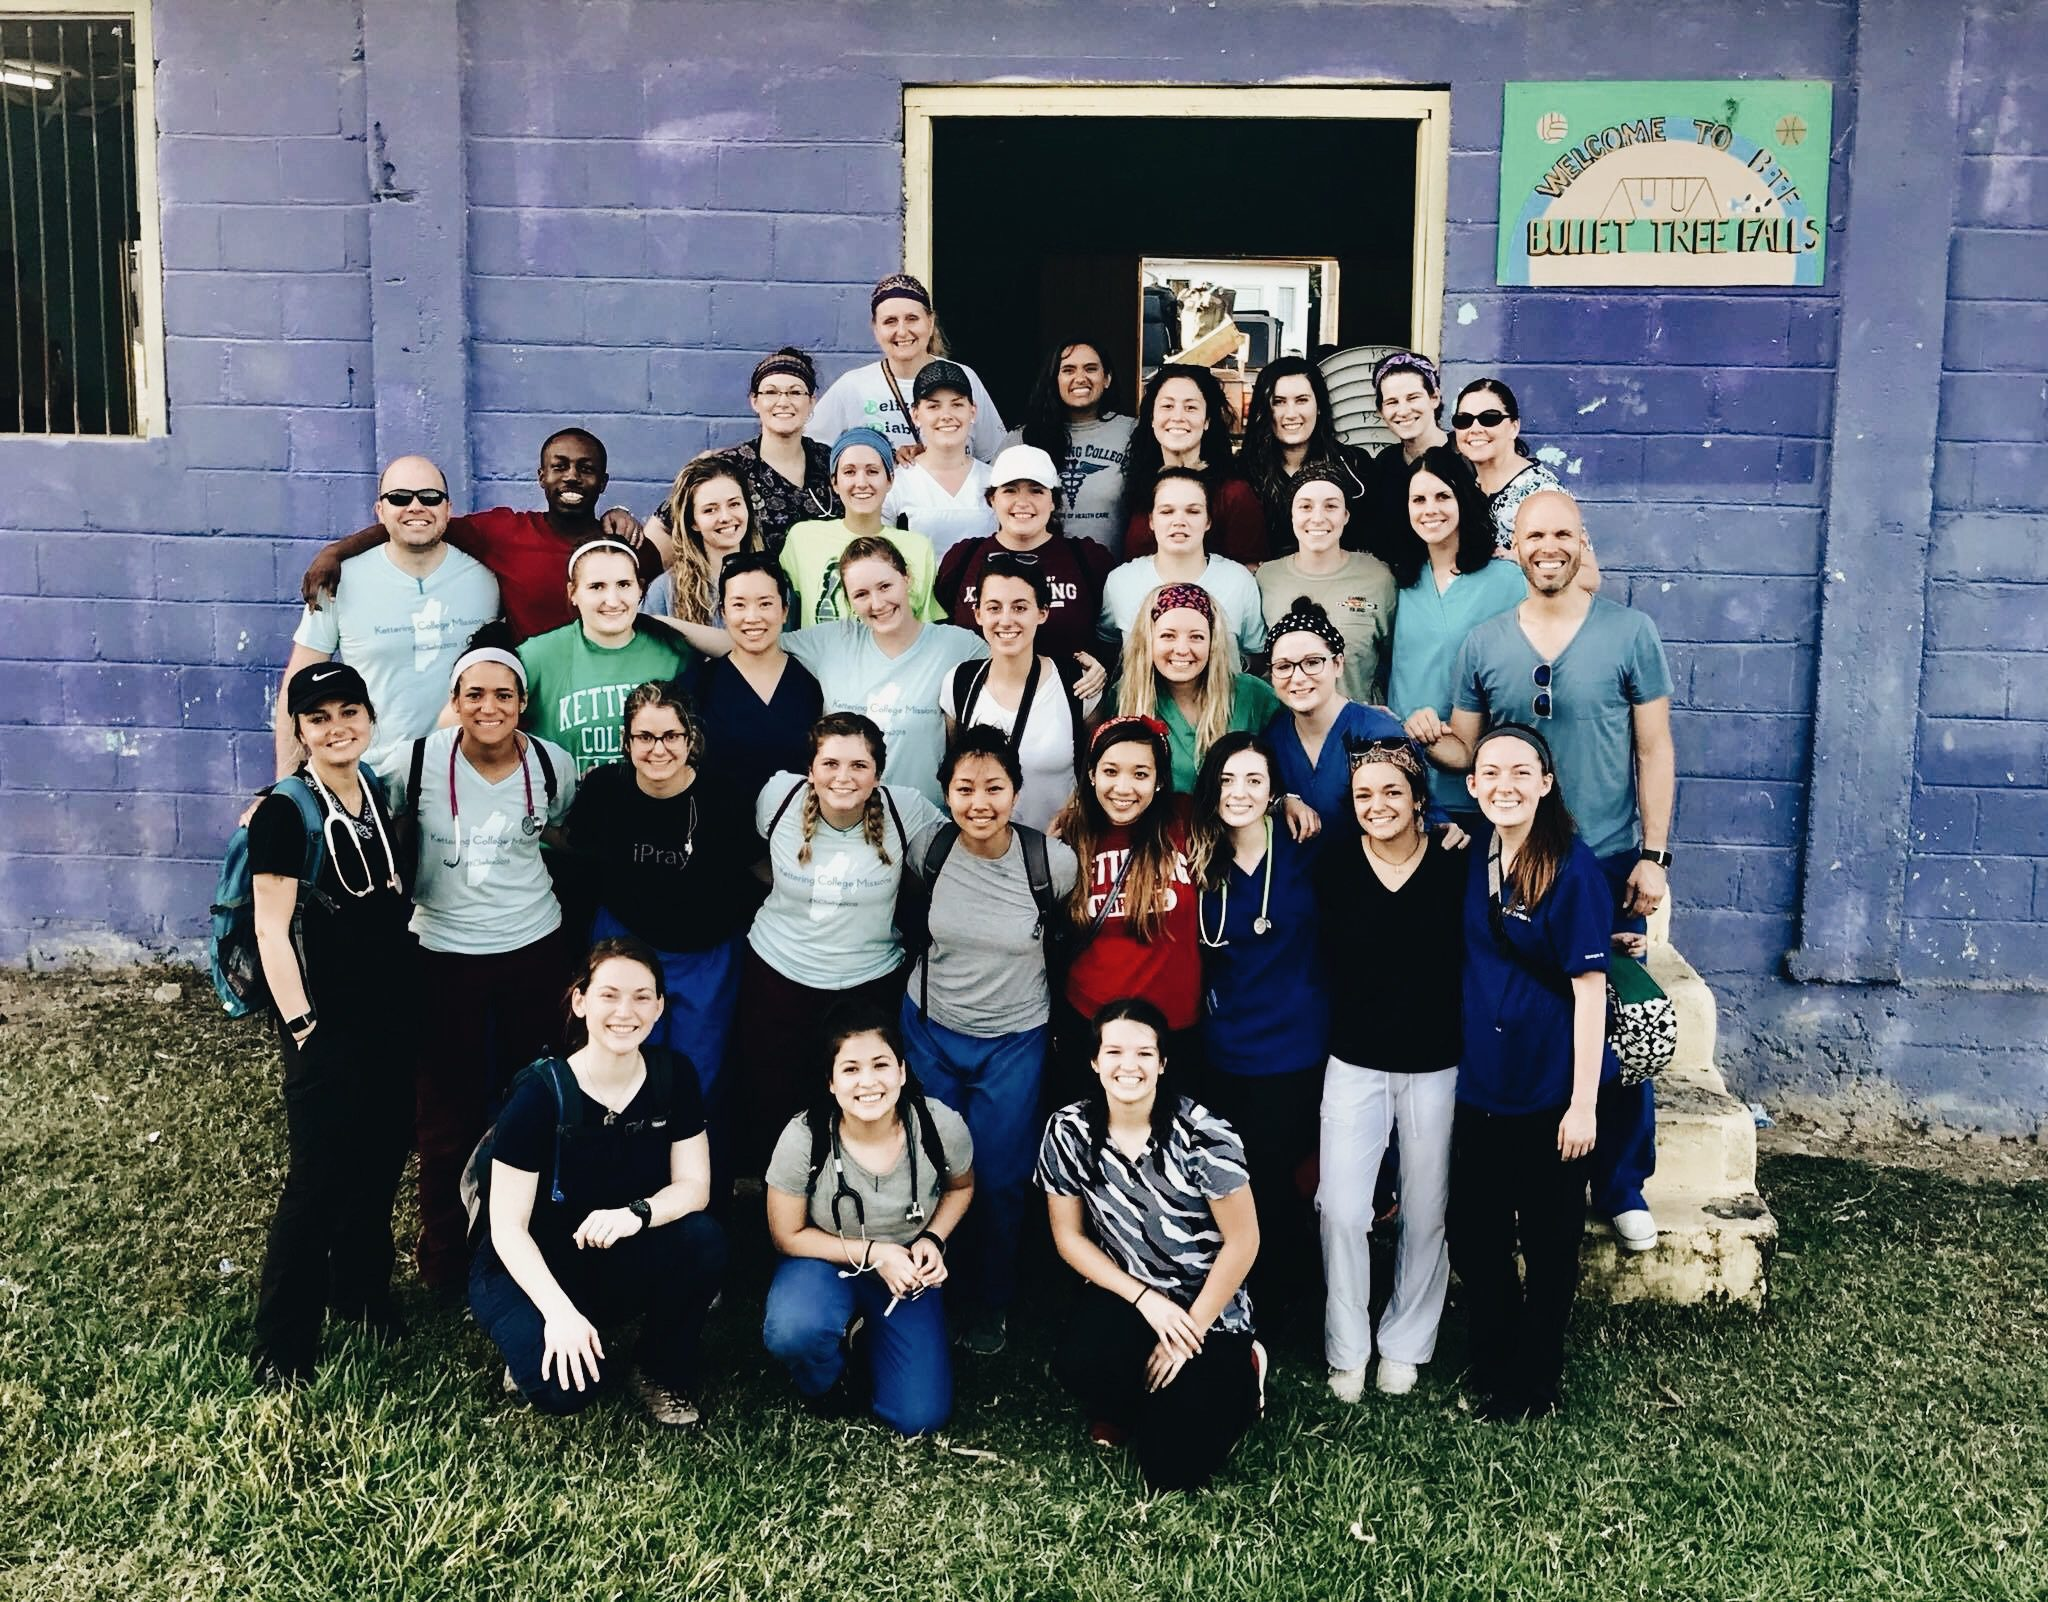 The Kettering College mission trip group in Belize, last year.